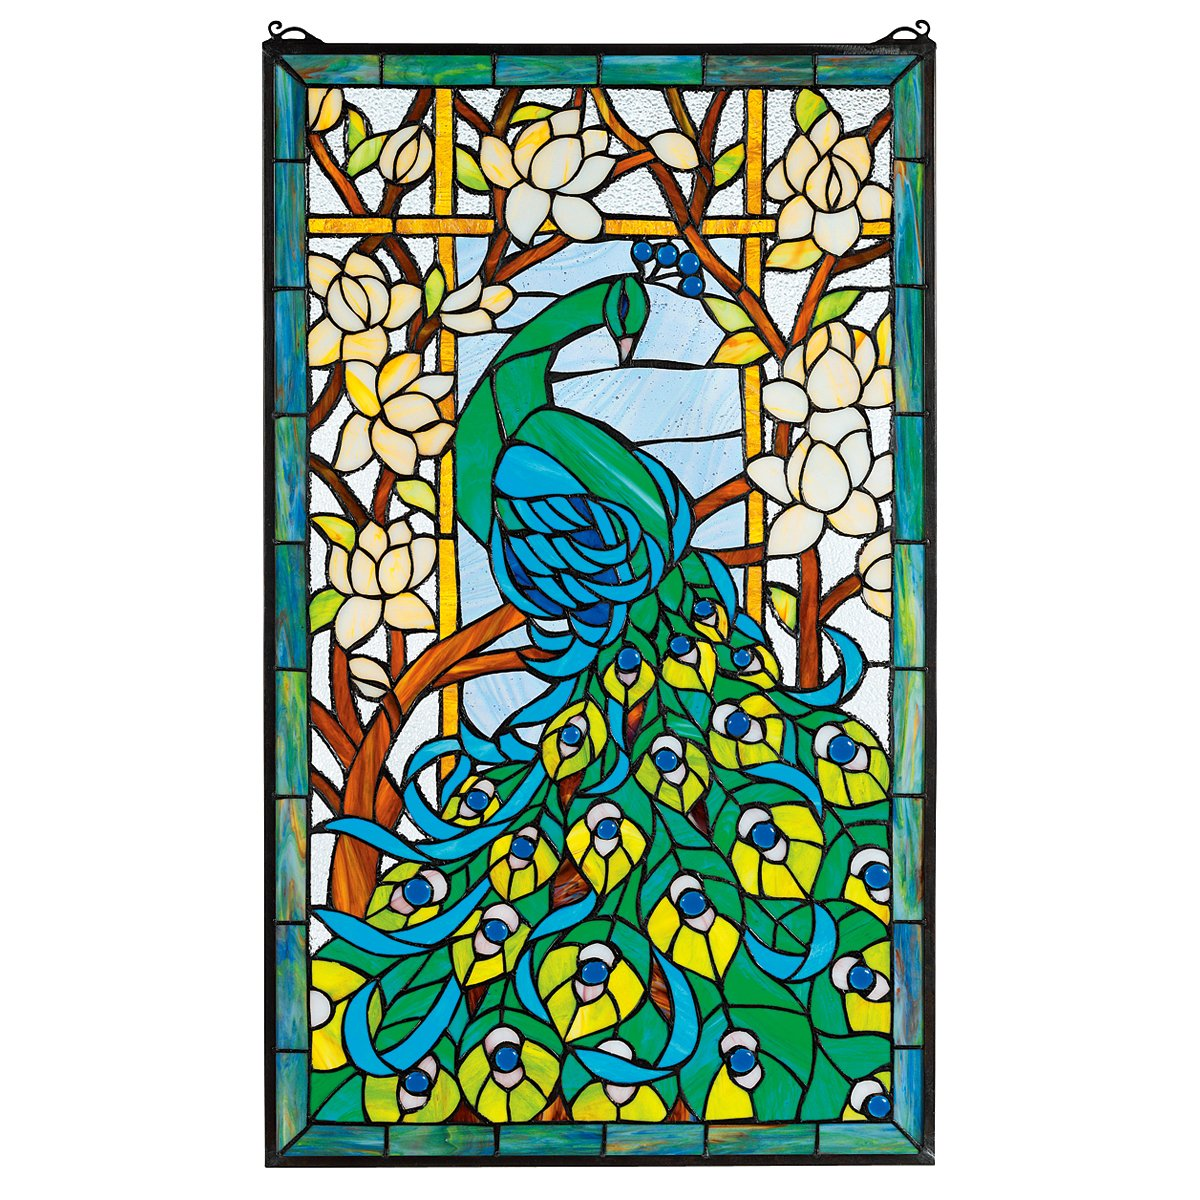 Amazon.com: Stained Glass Panel   Peacocku0027s Paradise Stained Glass Window  Hangings   Window Treatments: Wall Decor Stickers: Posters U0026 Prints